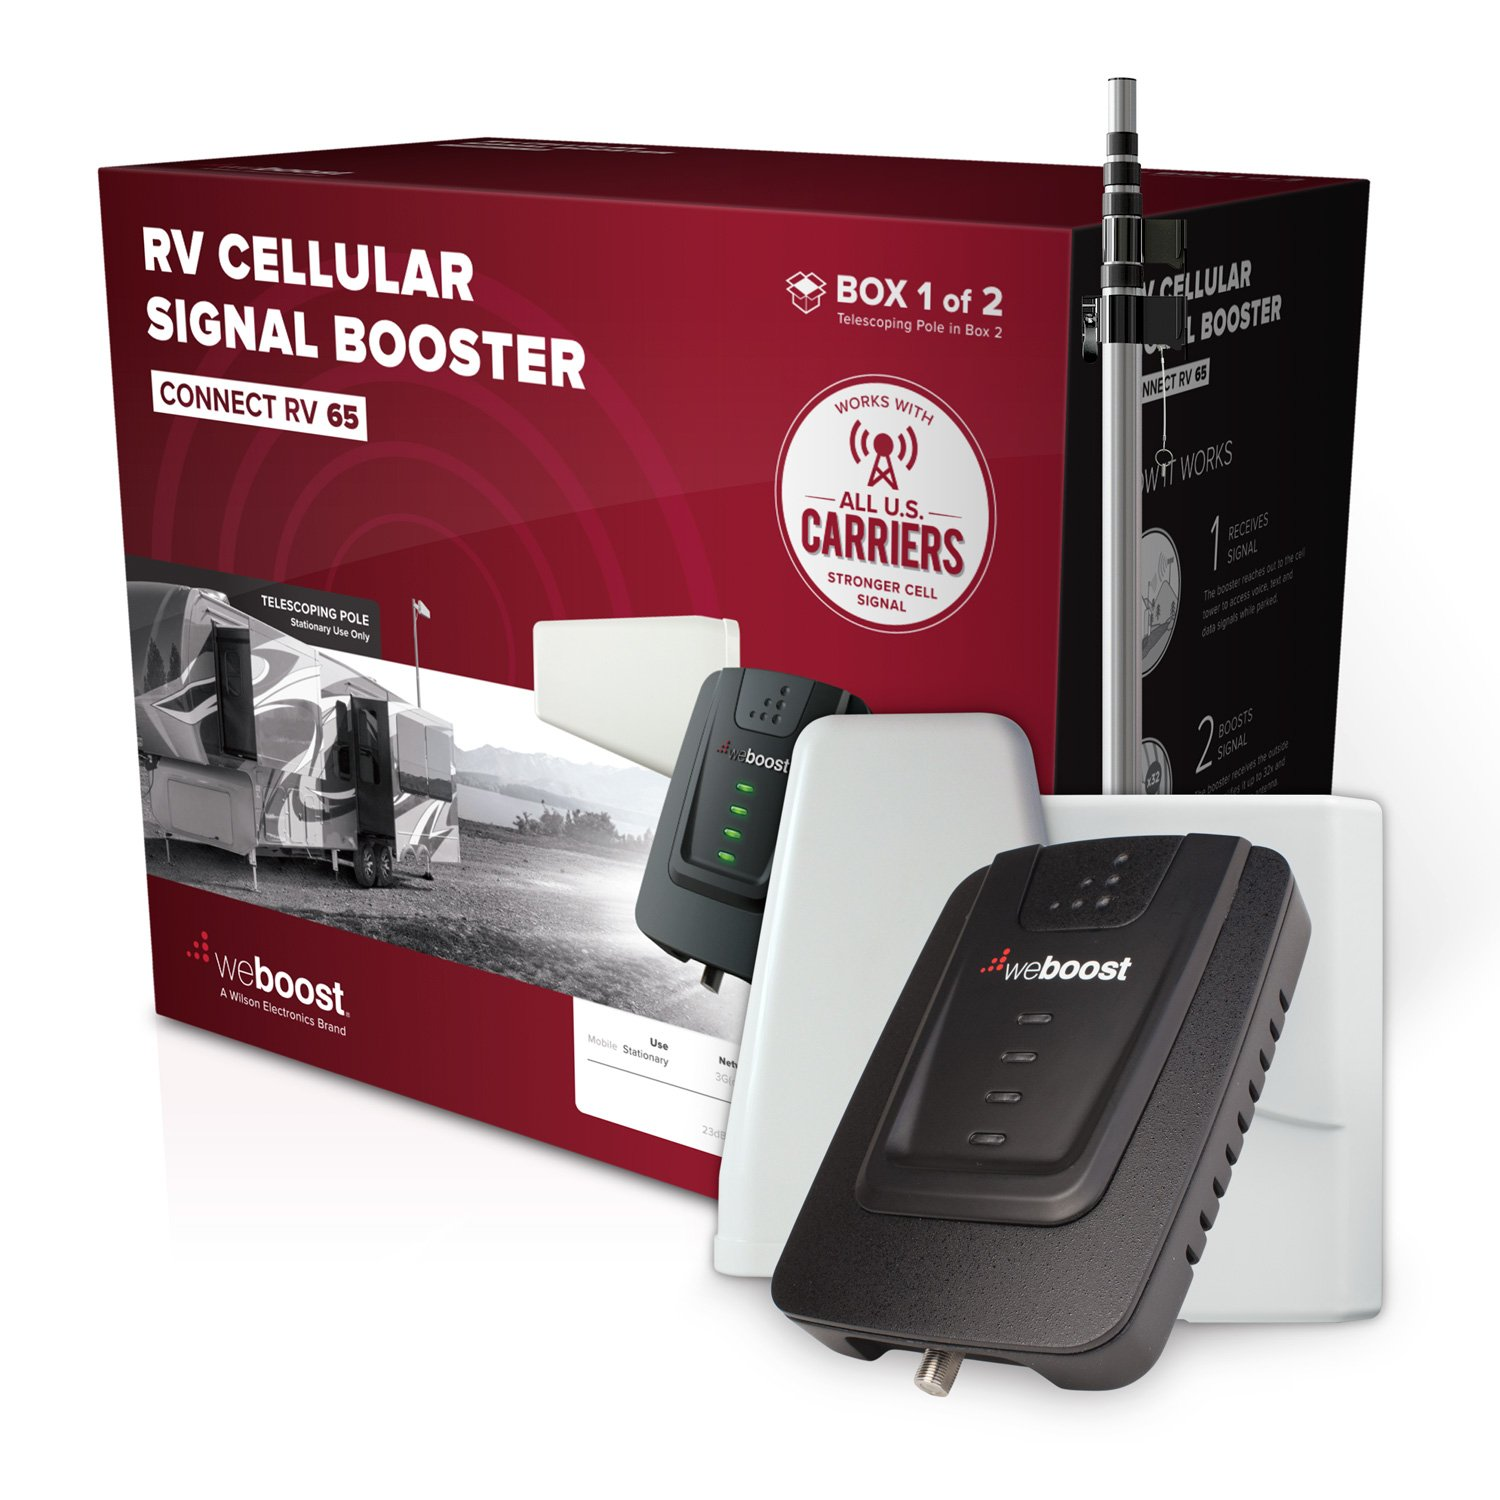 weBoost Connect RV 65 (471203) - Cell Phone Signal Booster for your Towable RV or Motorhome - Verizon, AT&T, T-Mobile, Sprint - Enhance Your Signal up to 32x.